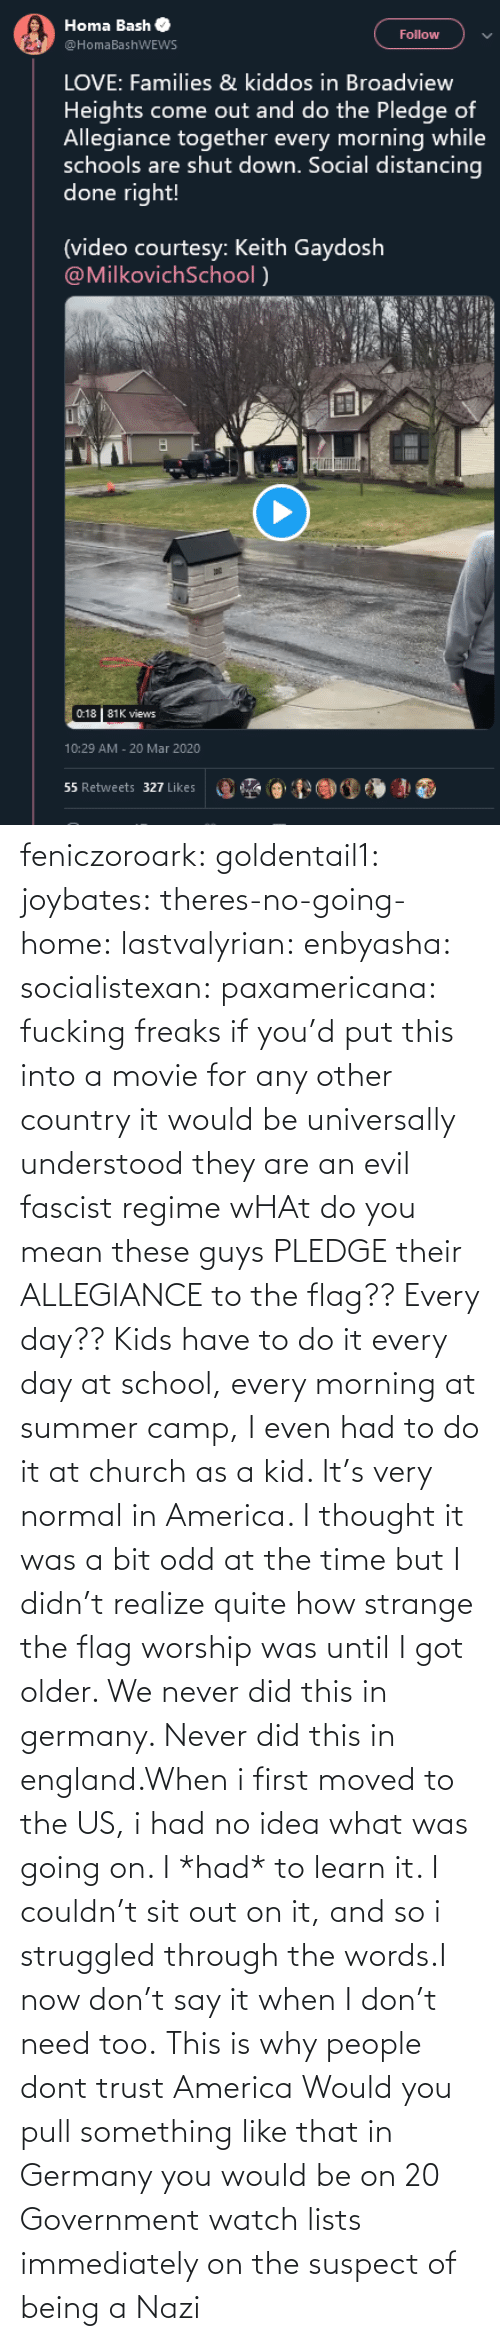 Being A: feniczoroark:  goldentail1:  joybates:  theres-no-going-home:  lastvalyrian:  enbyasha:  socialistexan:  paxamericana: fucking freaks       if you'd put this into a movie for any other country it would be universally understood they are an evil fascist regime    wHAt do you mean these guys PLEDGE their ALLEGIANCE to the flag?? Every day??   Kids have to do it every day at school, every morning at summer camp, I even had to do it at church as a kid. It's very normal in America. I thought it was a bit odd at the time but I didn't realize quite how strange the flag worship was until I got older.    We never did this in germany. Never did this in england.When i first moved to the US, i had no idea what was going on. I *had* to learn it. I couldn't sit out on it, and so i struggled through the words.I now don't say it when I don't need too.   This is why people dont trust America    Would you pull something like that in Germany you would be on 20 Government watch lists immediately on the suspect of being a Nazi